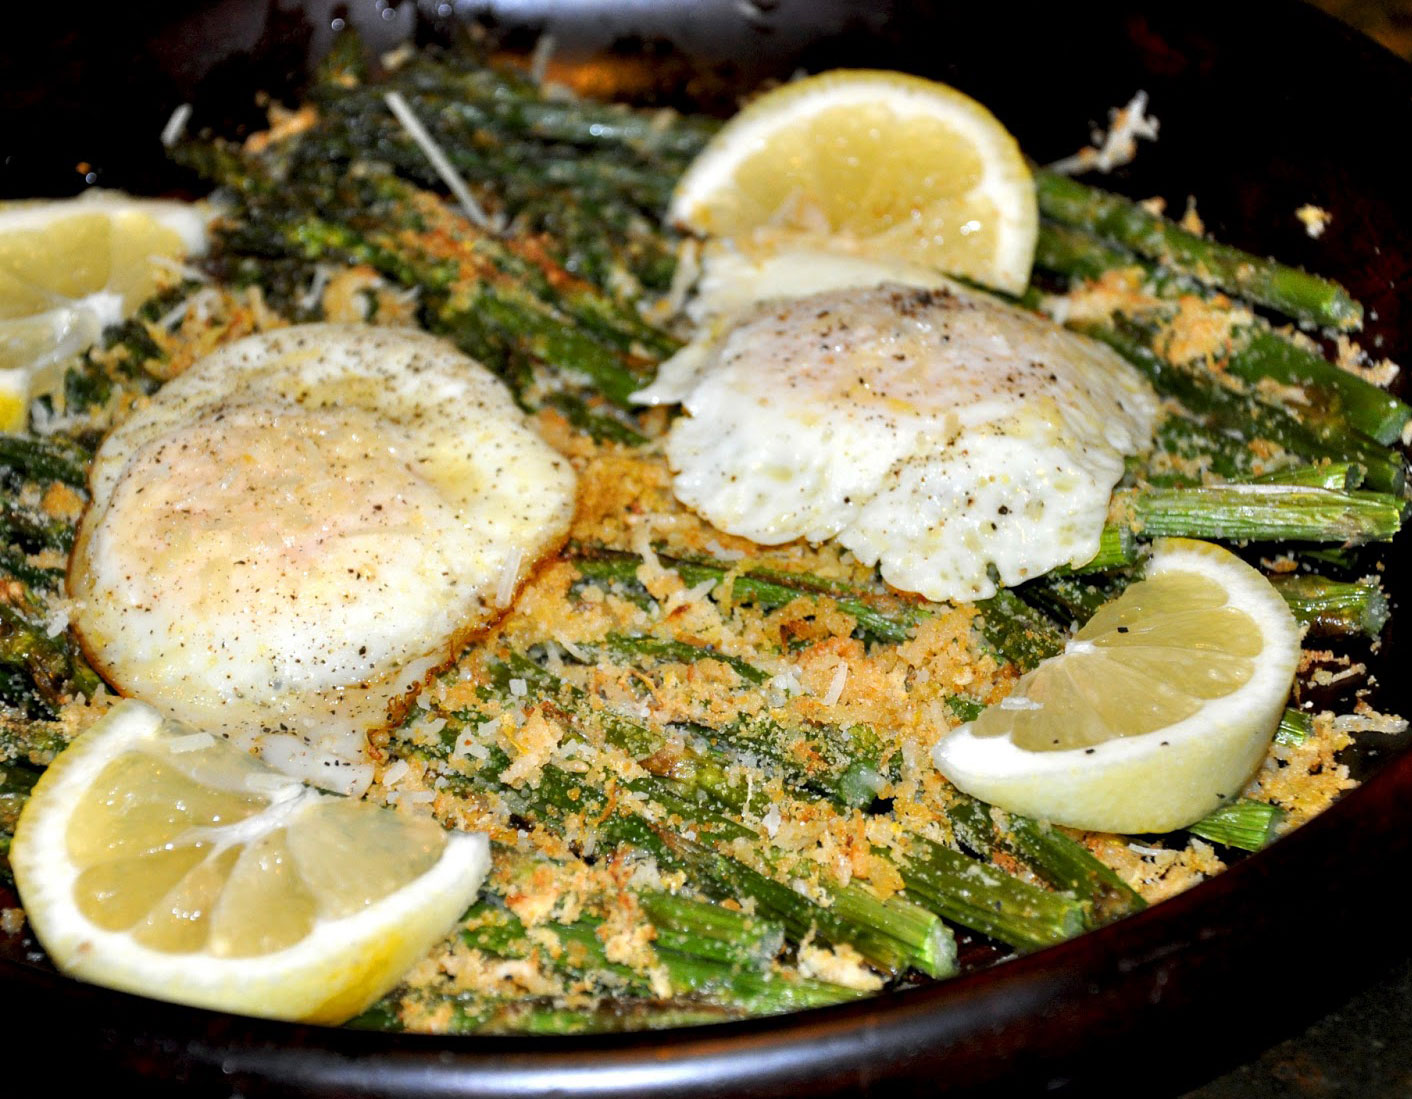 CRISPY CHEESY LEMON ASPARAGUS WITH FIRED EGGS